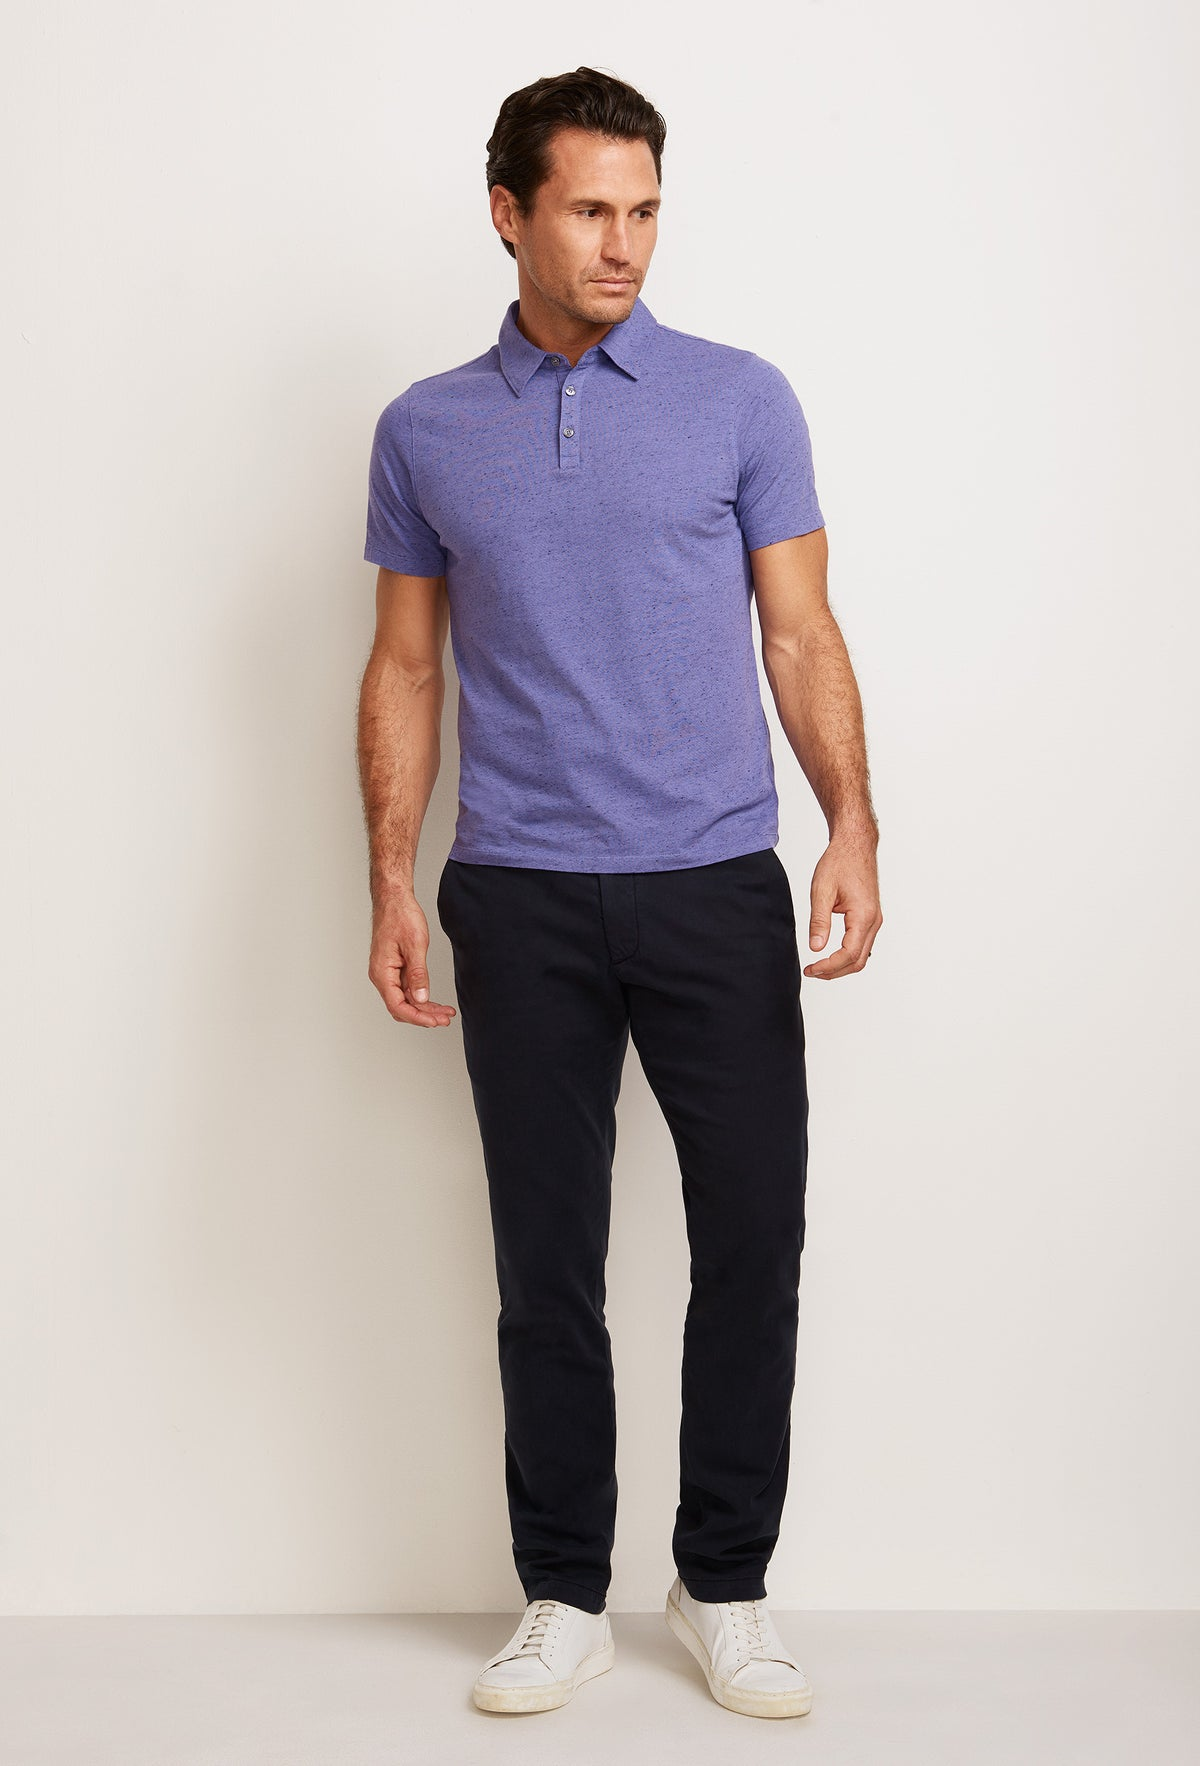 ZACHARY-PRELL-Cadler-PolosModern-Menswear-New-Dress-Code